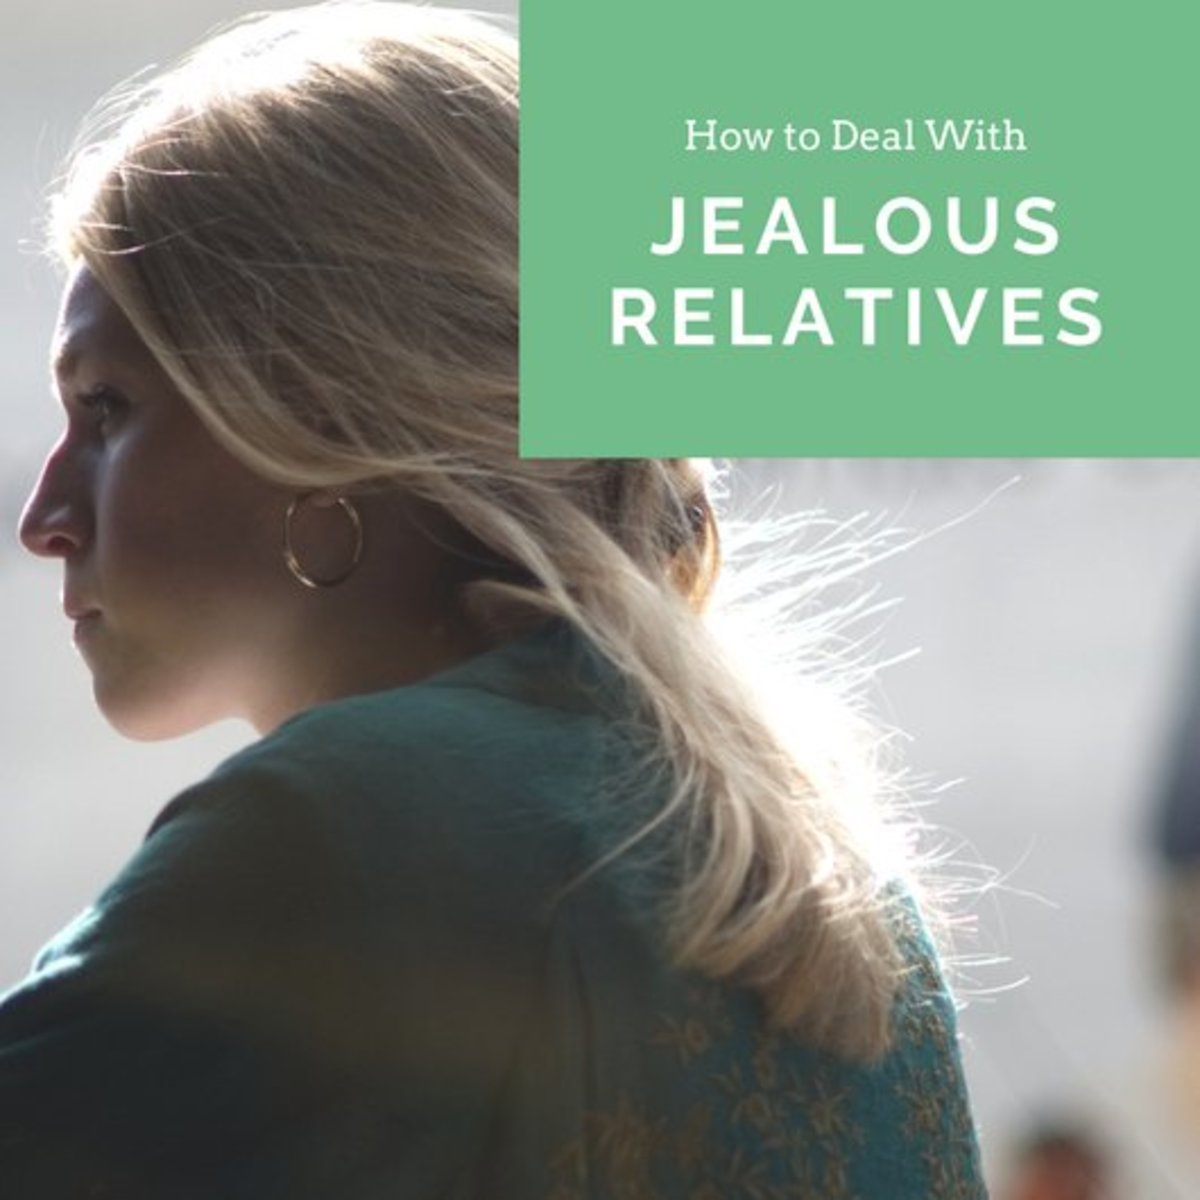 Signs of Jealous Family Members and How to Deal With Them